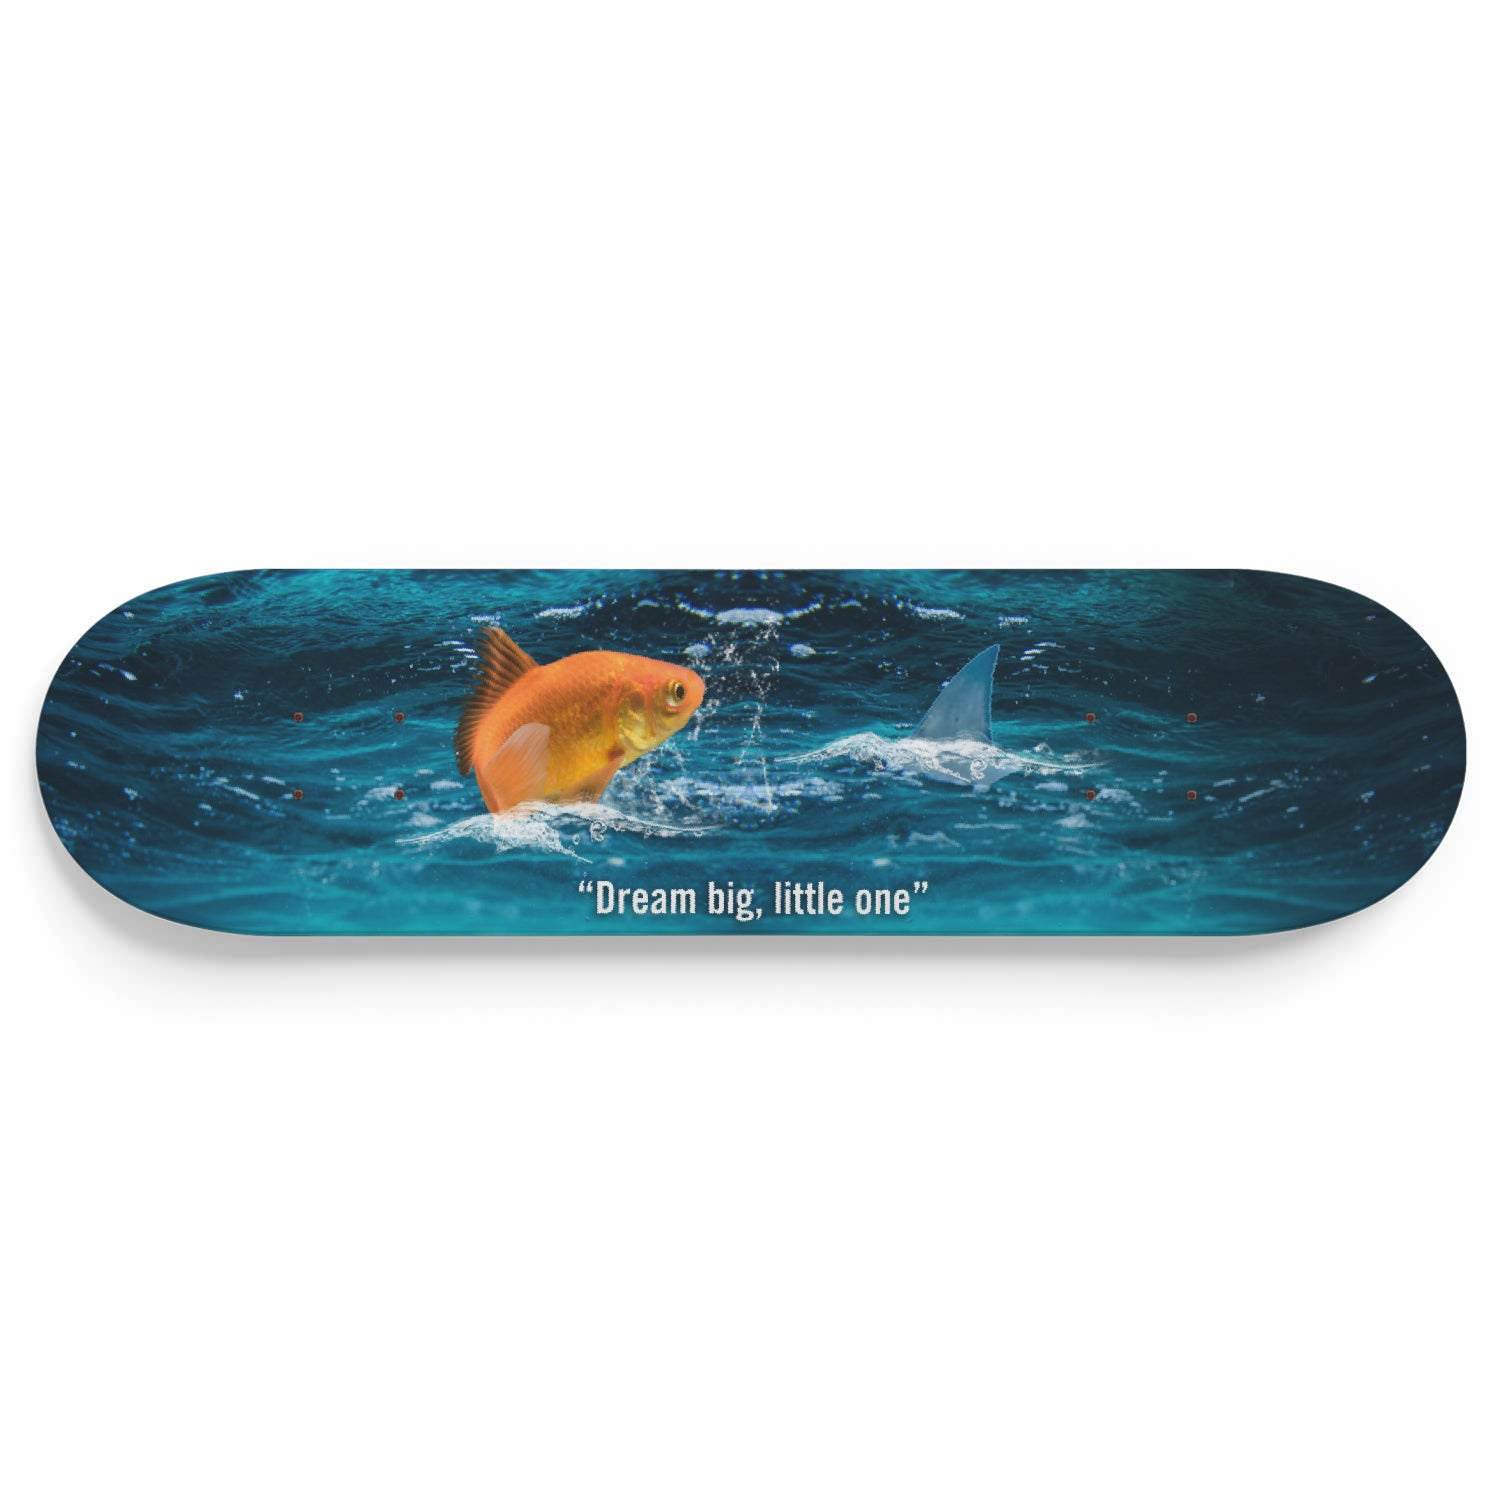 Dream Big - 1 Piece Skateboard Wall Art